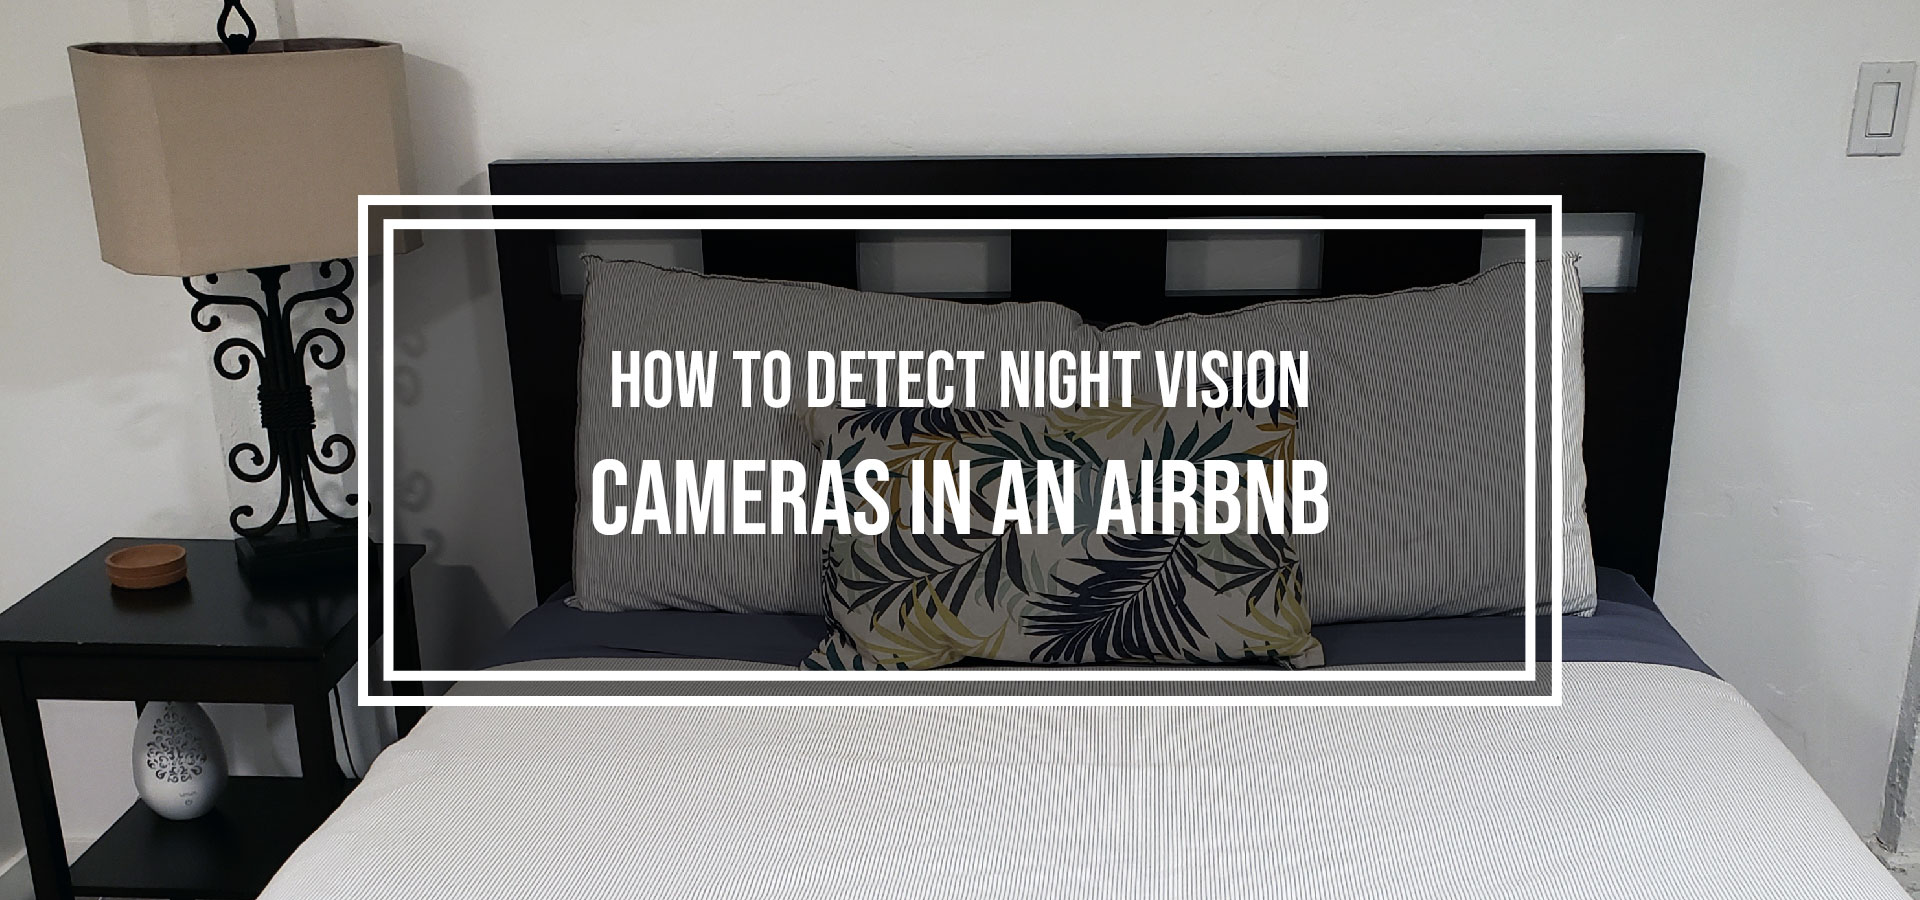 How to Detect Night Vision Cameras in an Airbnb · Kenton ...